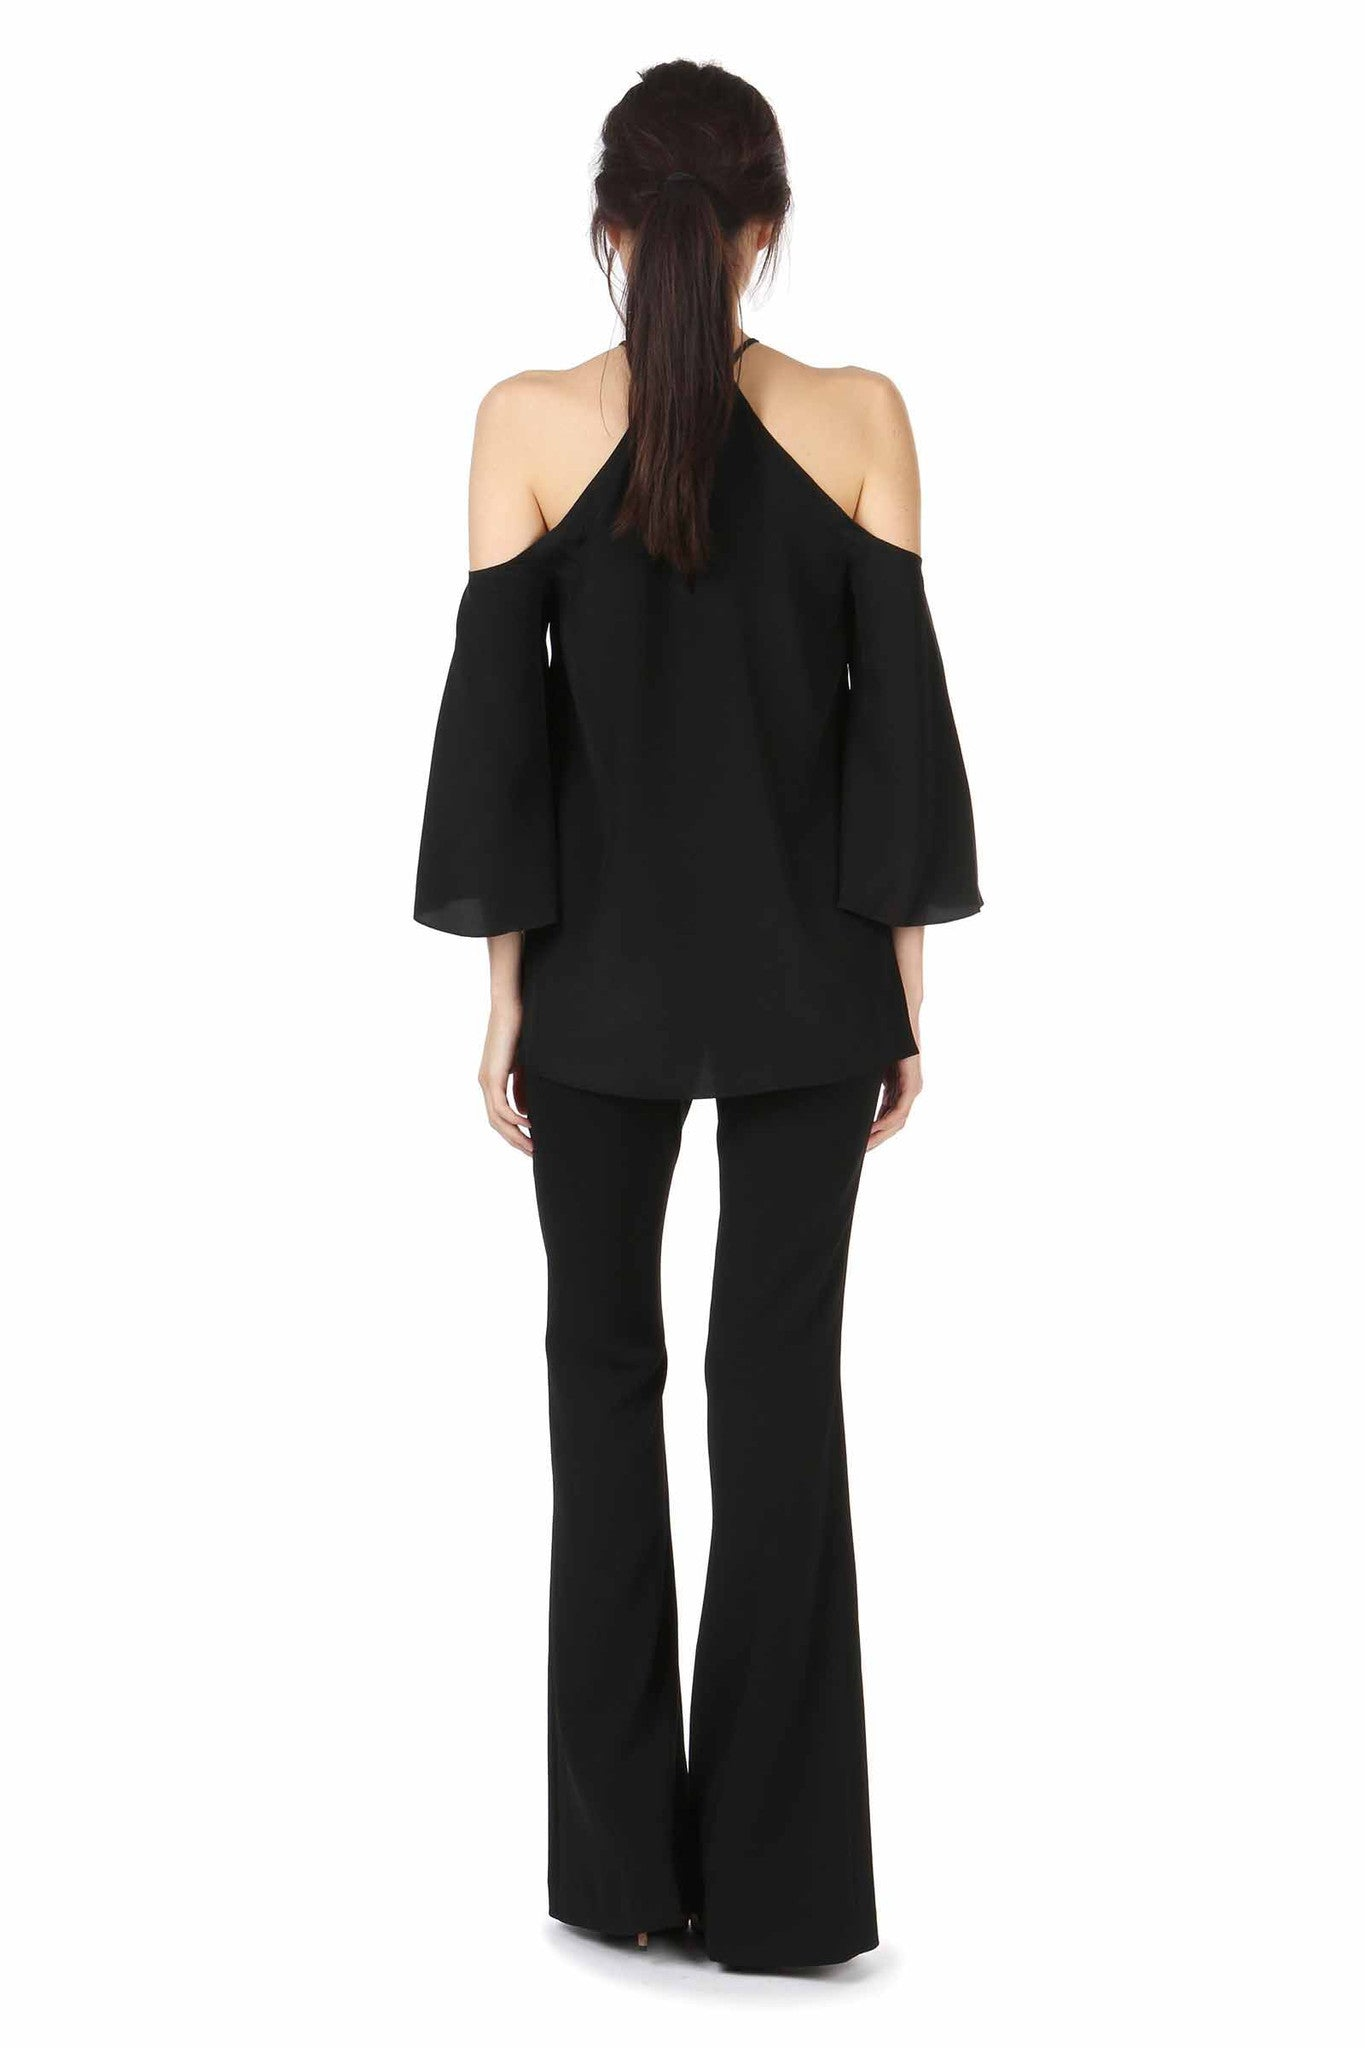 BRENLY BLACK COLD SHOULDER TOP - FINAL SALE